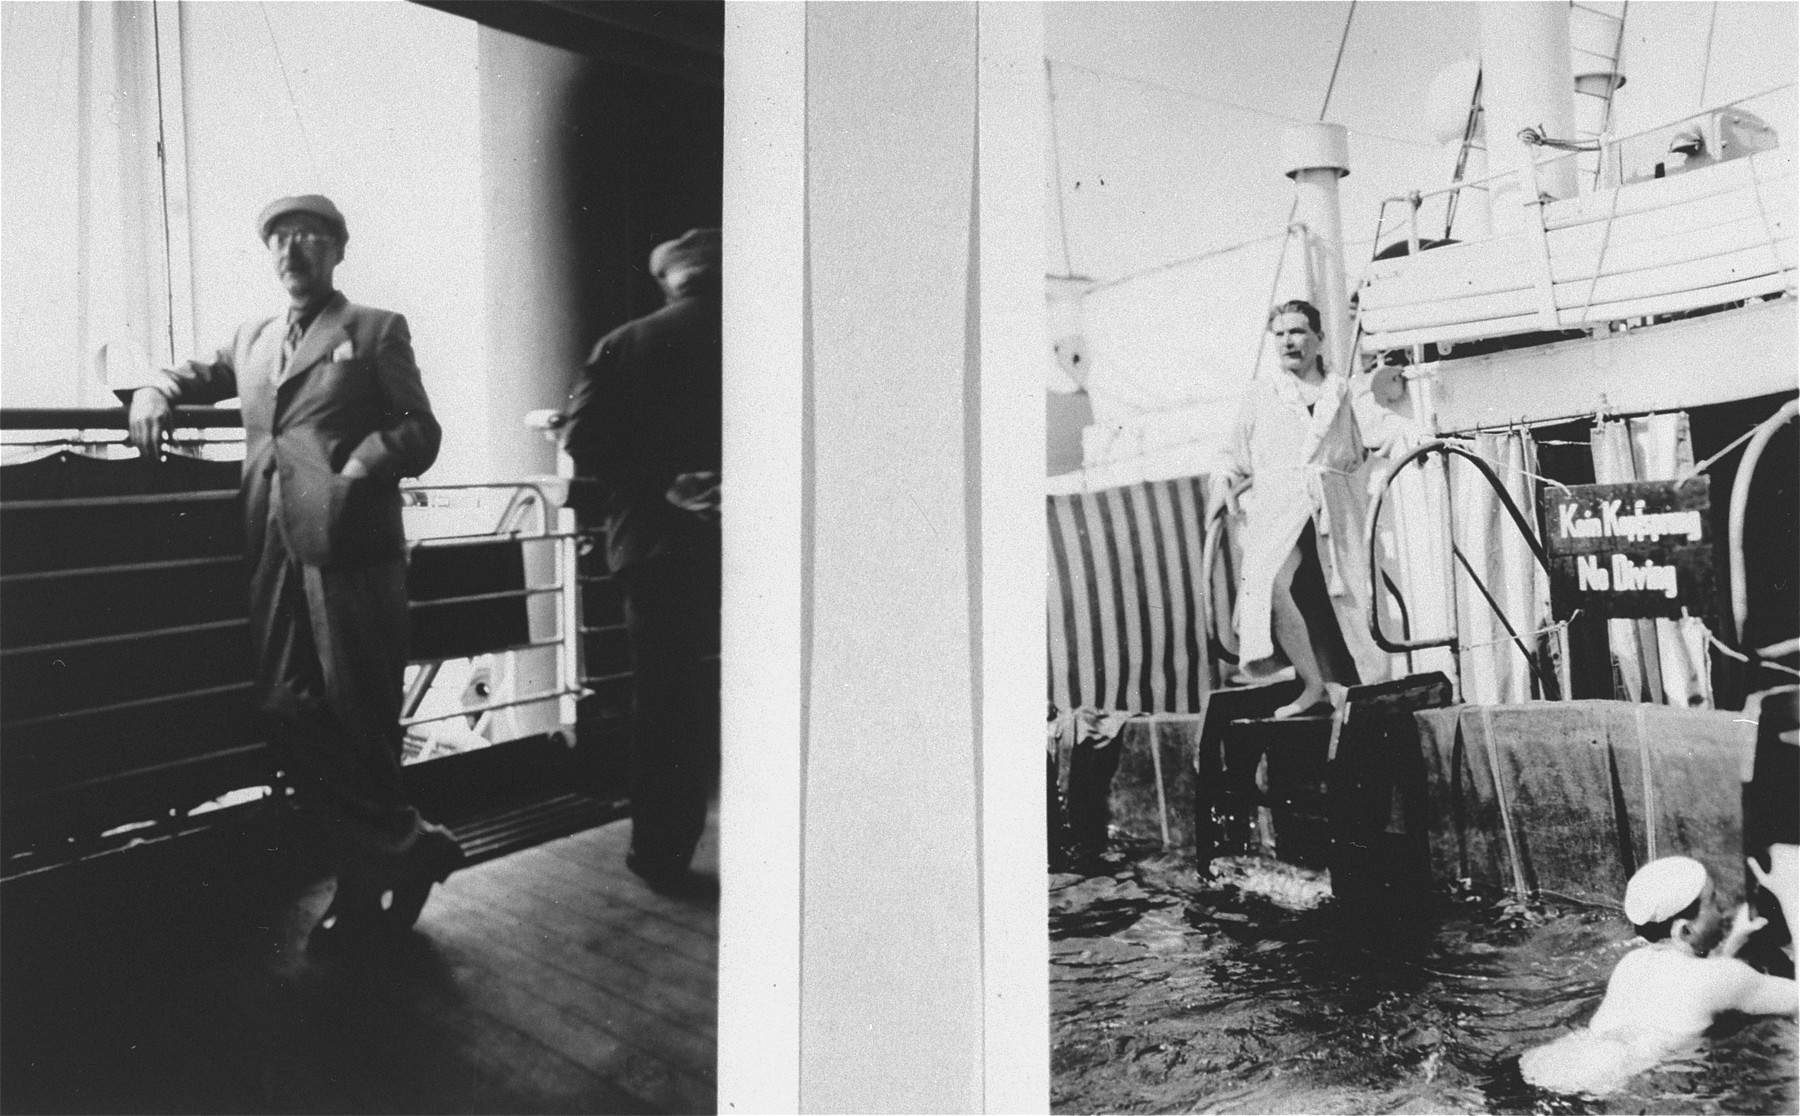 Passengers on the refugee ship MS St. Louis.    Left: a passenger stands on the deck.  Right: passengers swim in the pool.  From a photo album belonging to St. Louis passenger Moritz Schoenberger.